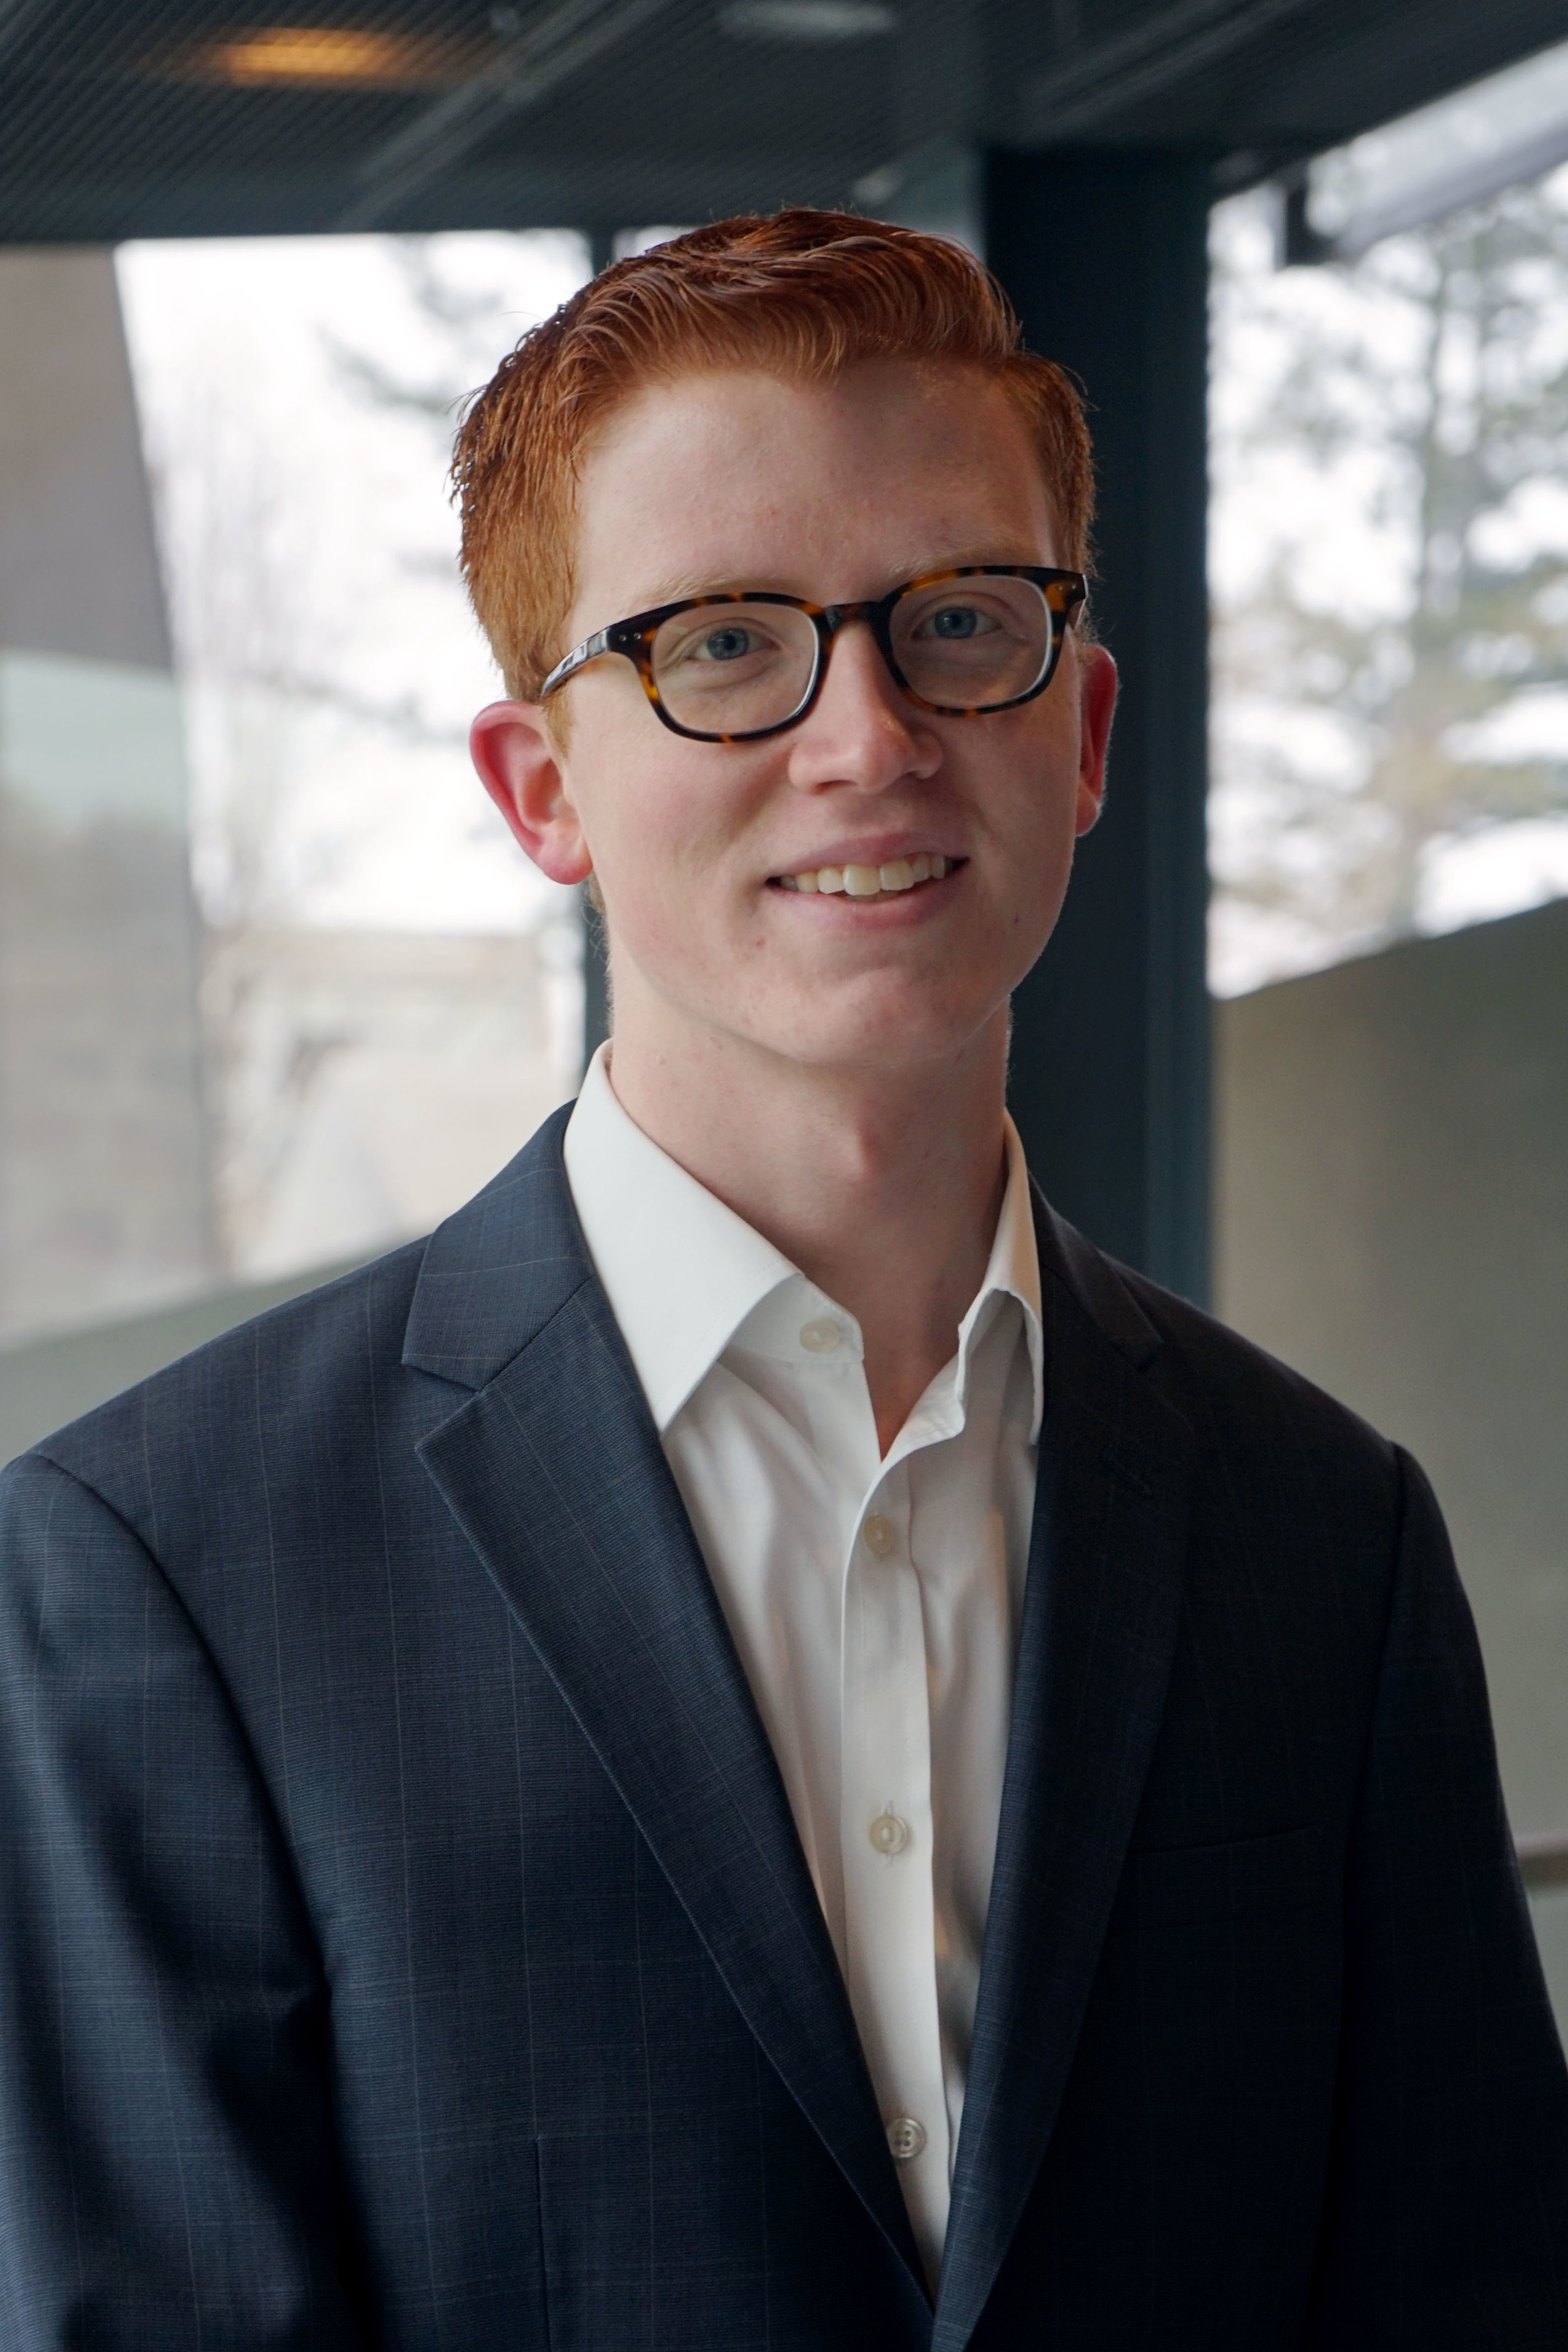 Matthew Saxton | Project Director    Industrial and Labor Relations, 2020    Product Management & Analytics Intern at Capital One    AKPsi, CU Nooz, Peer Review Board